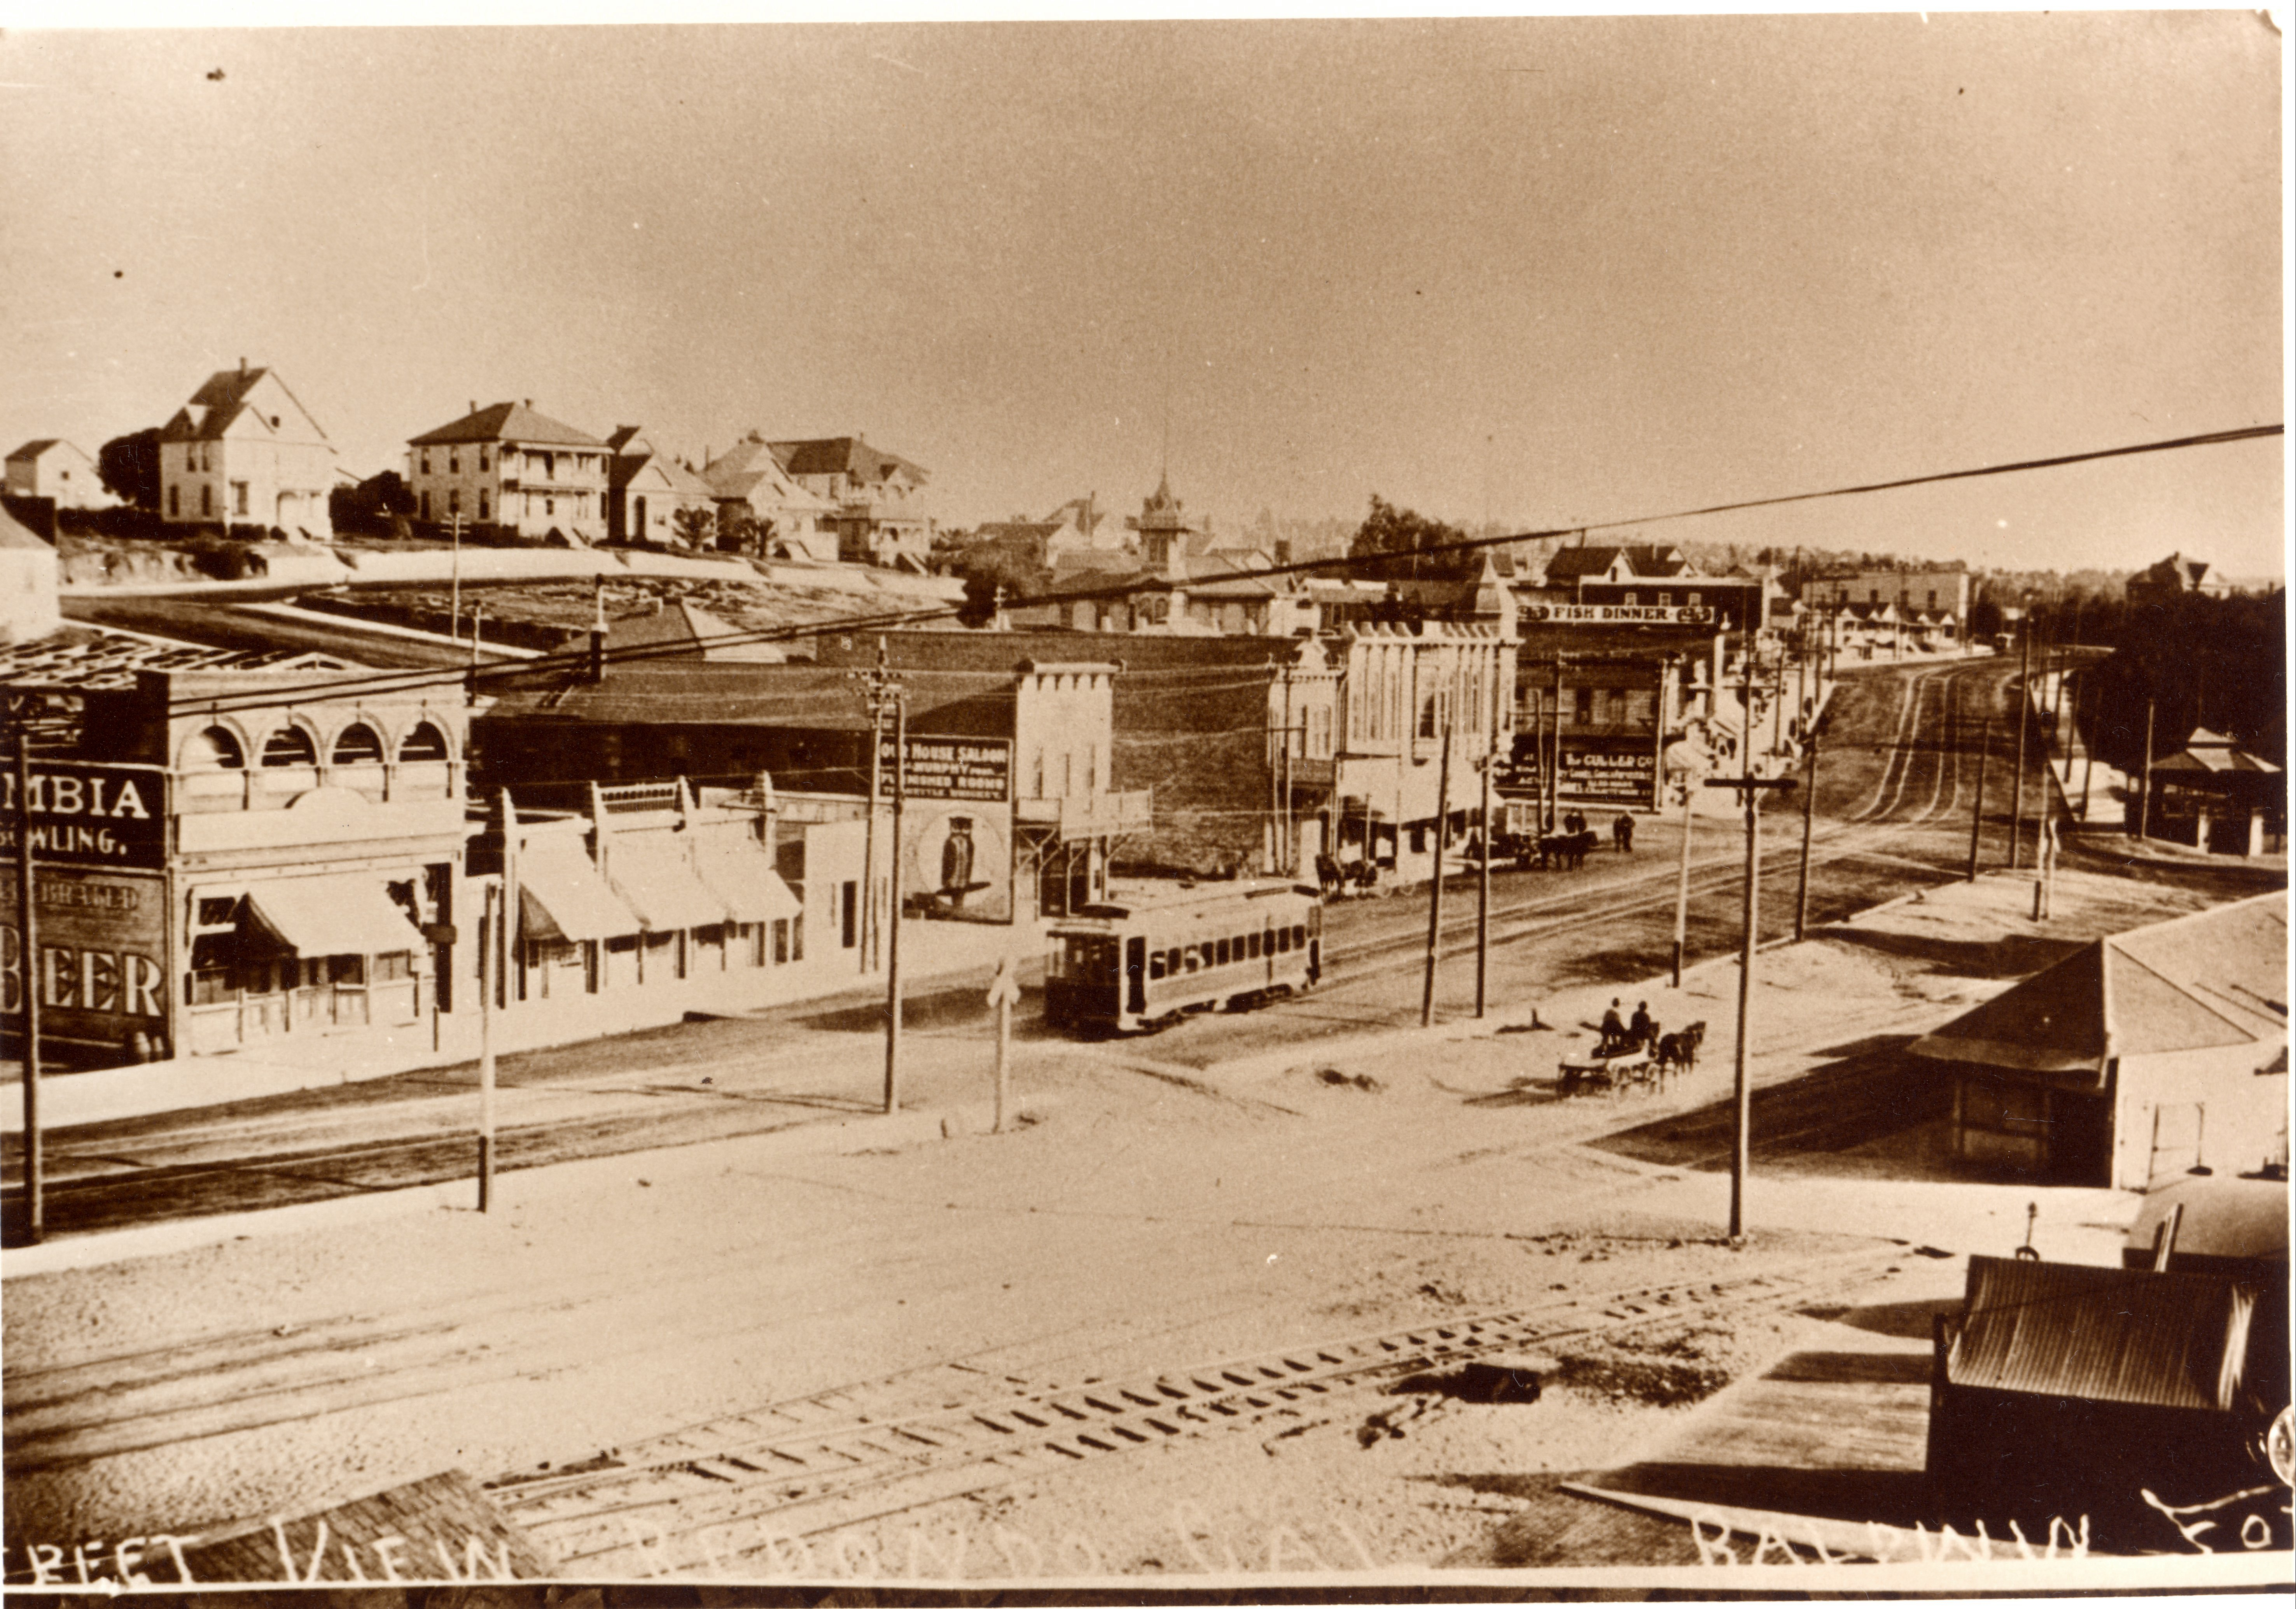 Pacific Ave 1890's